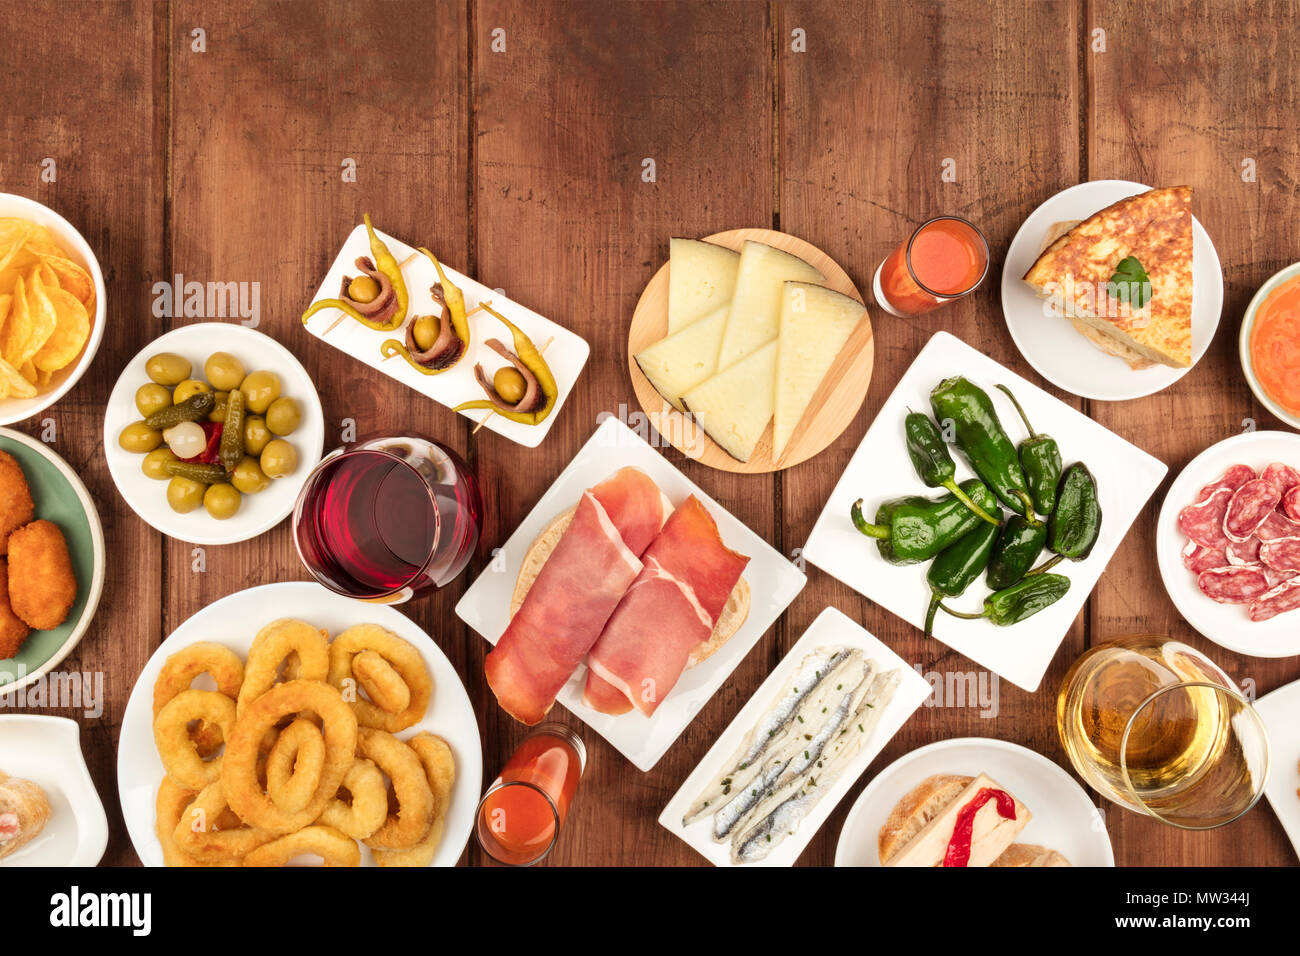 An overhead photo of an assortment of Spanish tapas food, shot from the top on a dark rustic background with copy space. Jamon, gazpacho, cheese, wine - Stock Image